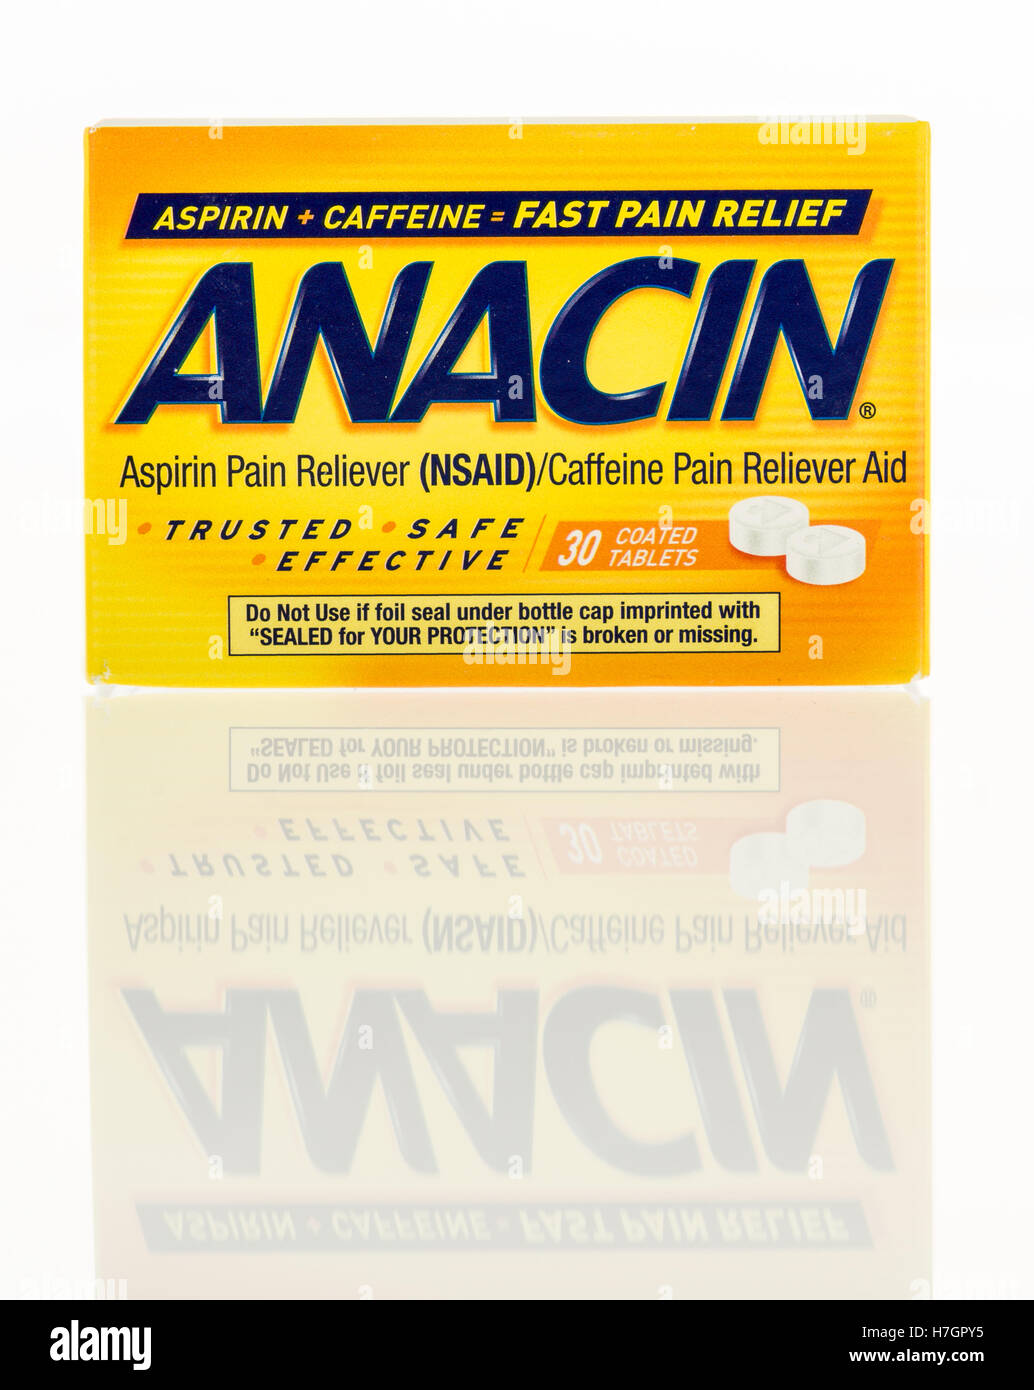 Aspirin Box Stock Photos & Aspirin Box Stock Images - Alamy